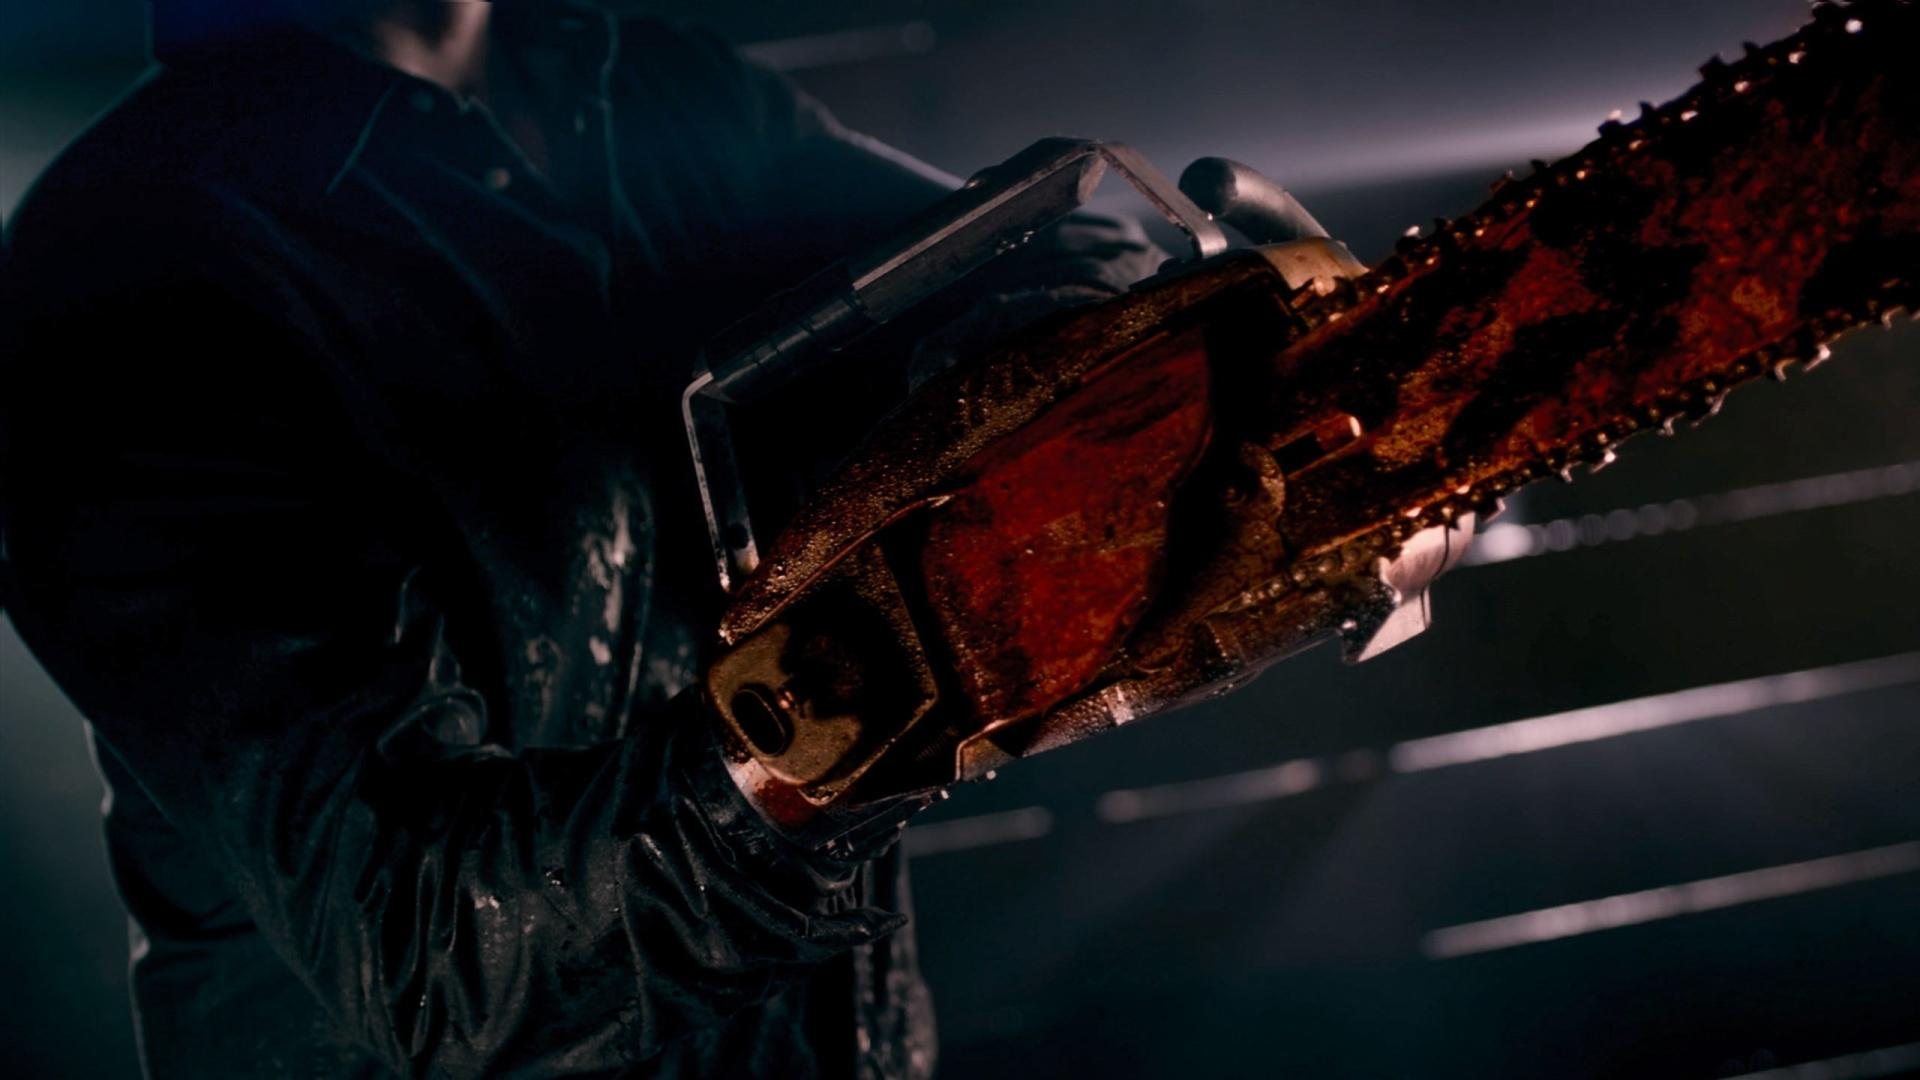 Ash Vs Evil Dead Wallpaper HD Download